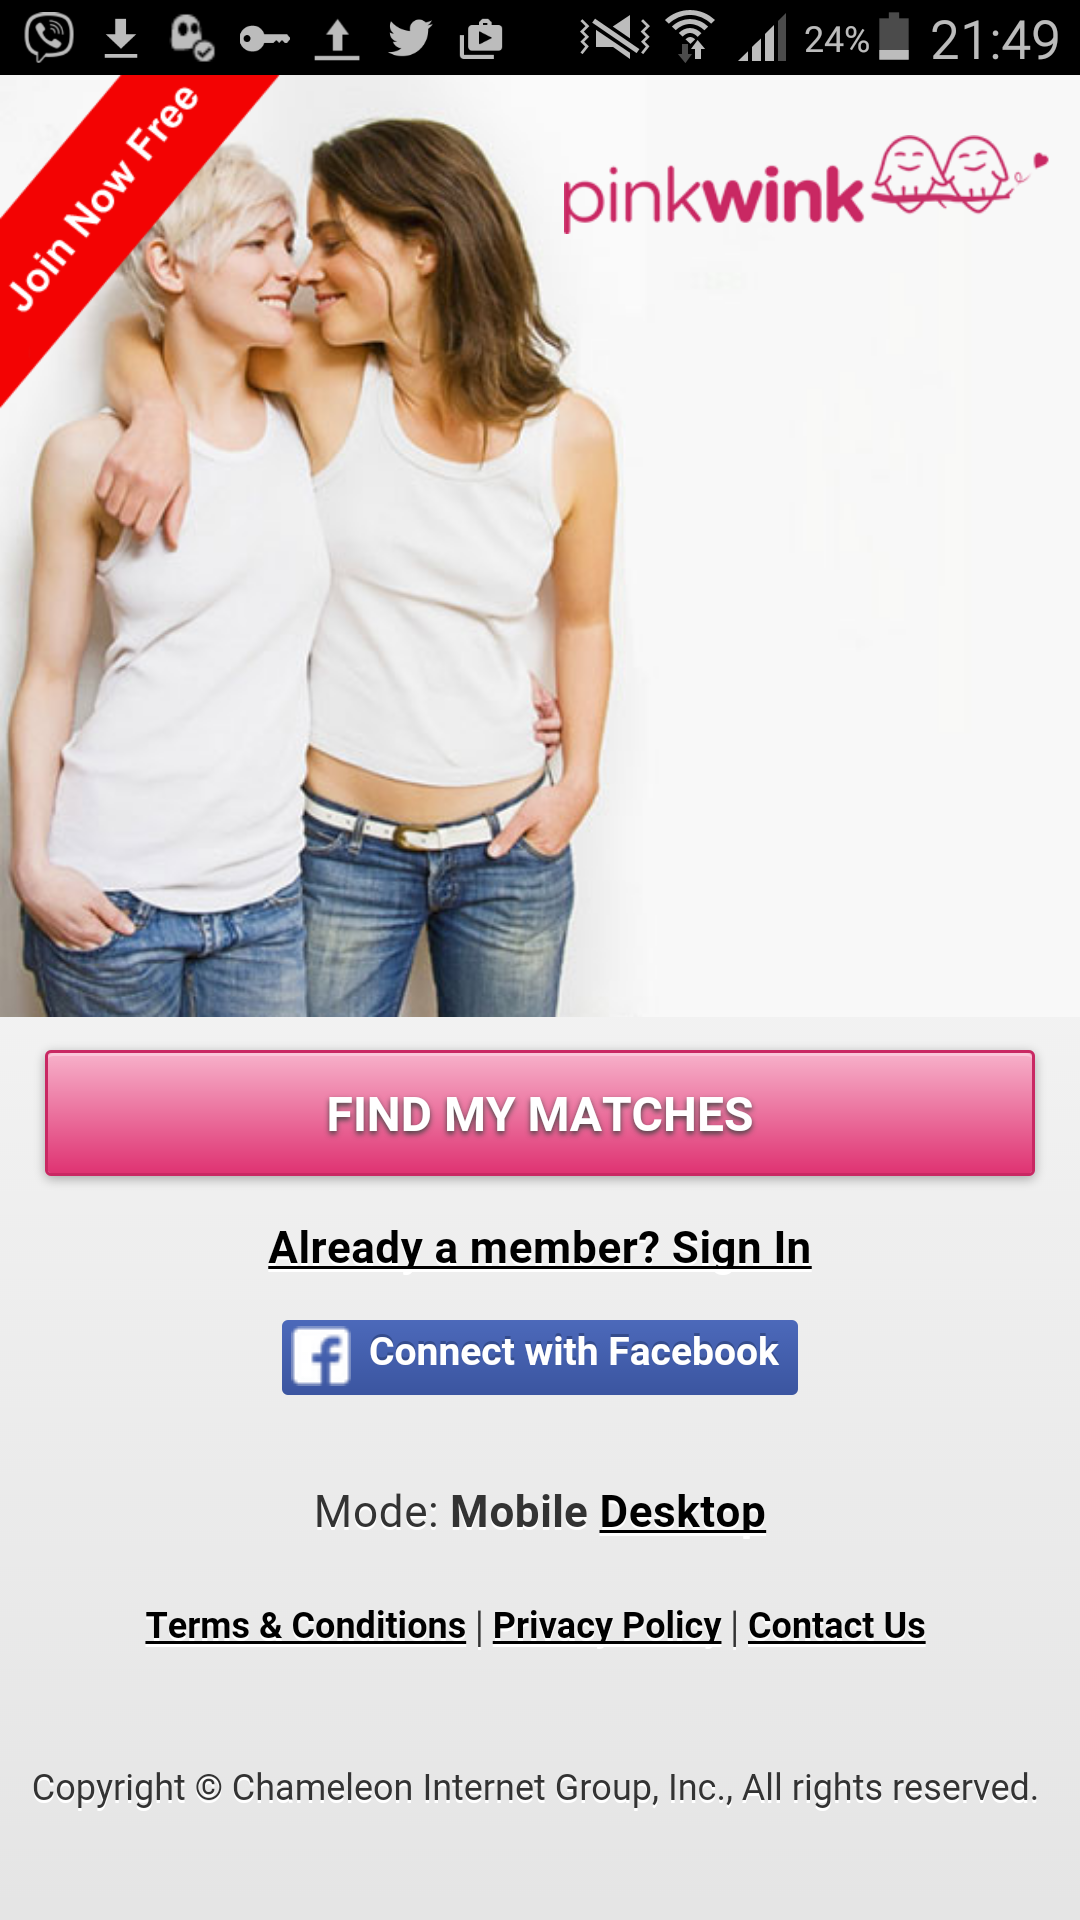 dresher lesbian dating site Her is an award-winning lesbian app use it to meet girls nearby, stay up-to-date with local lgbt events and read queer news for dating, chatting and browsing.